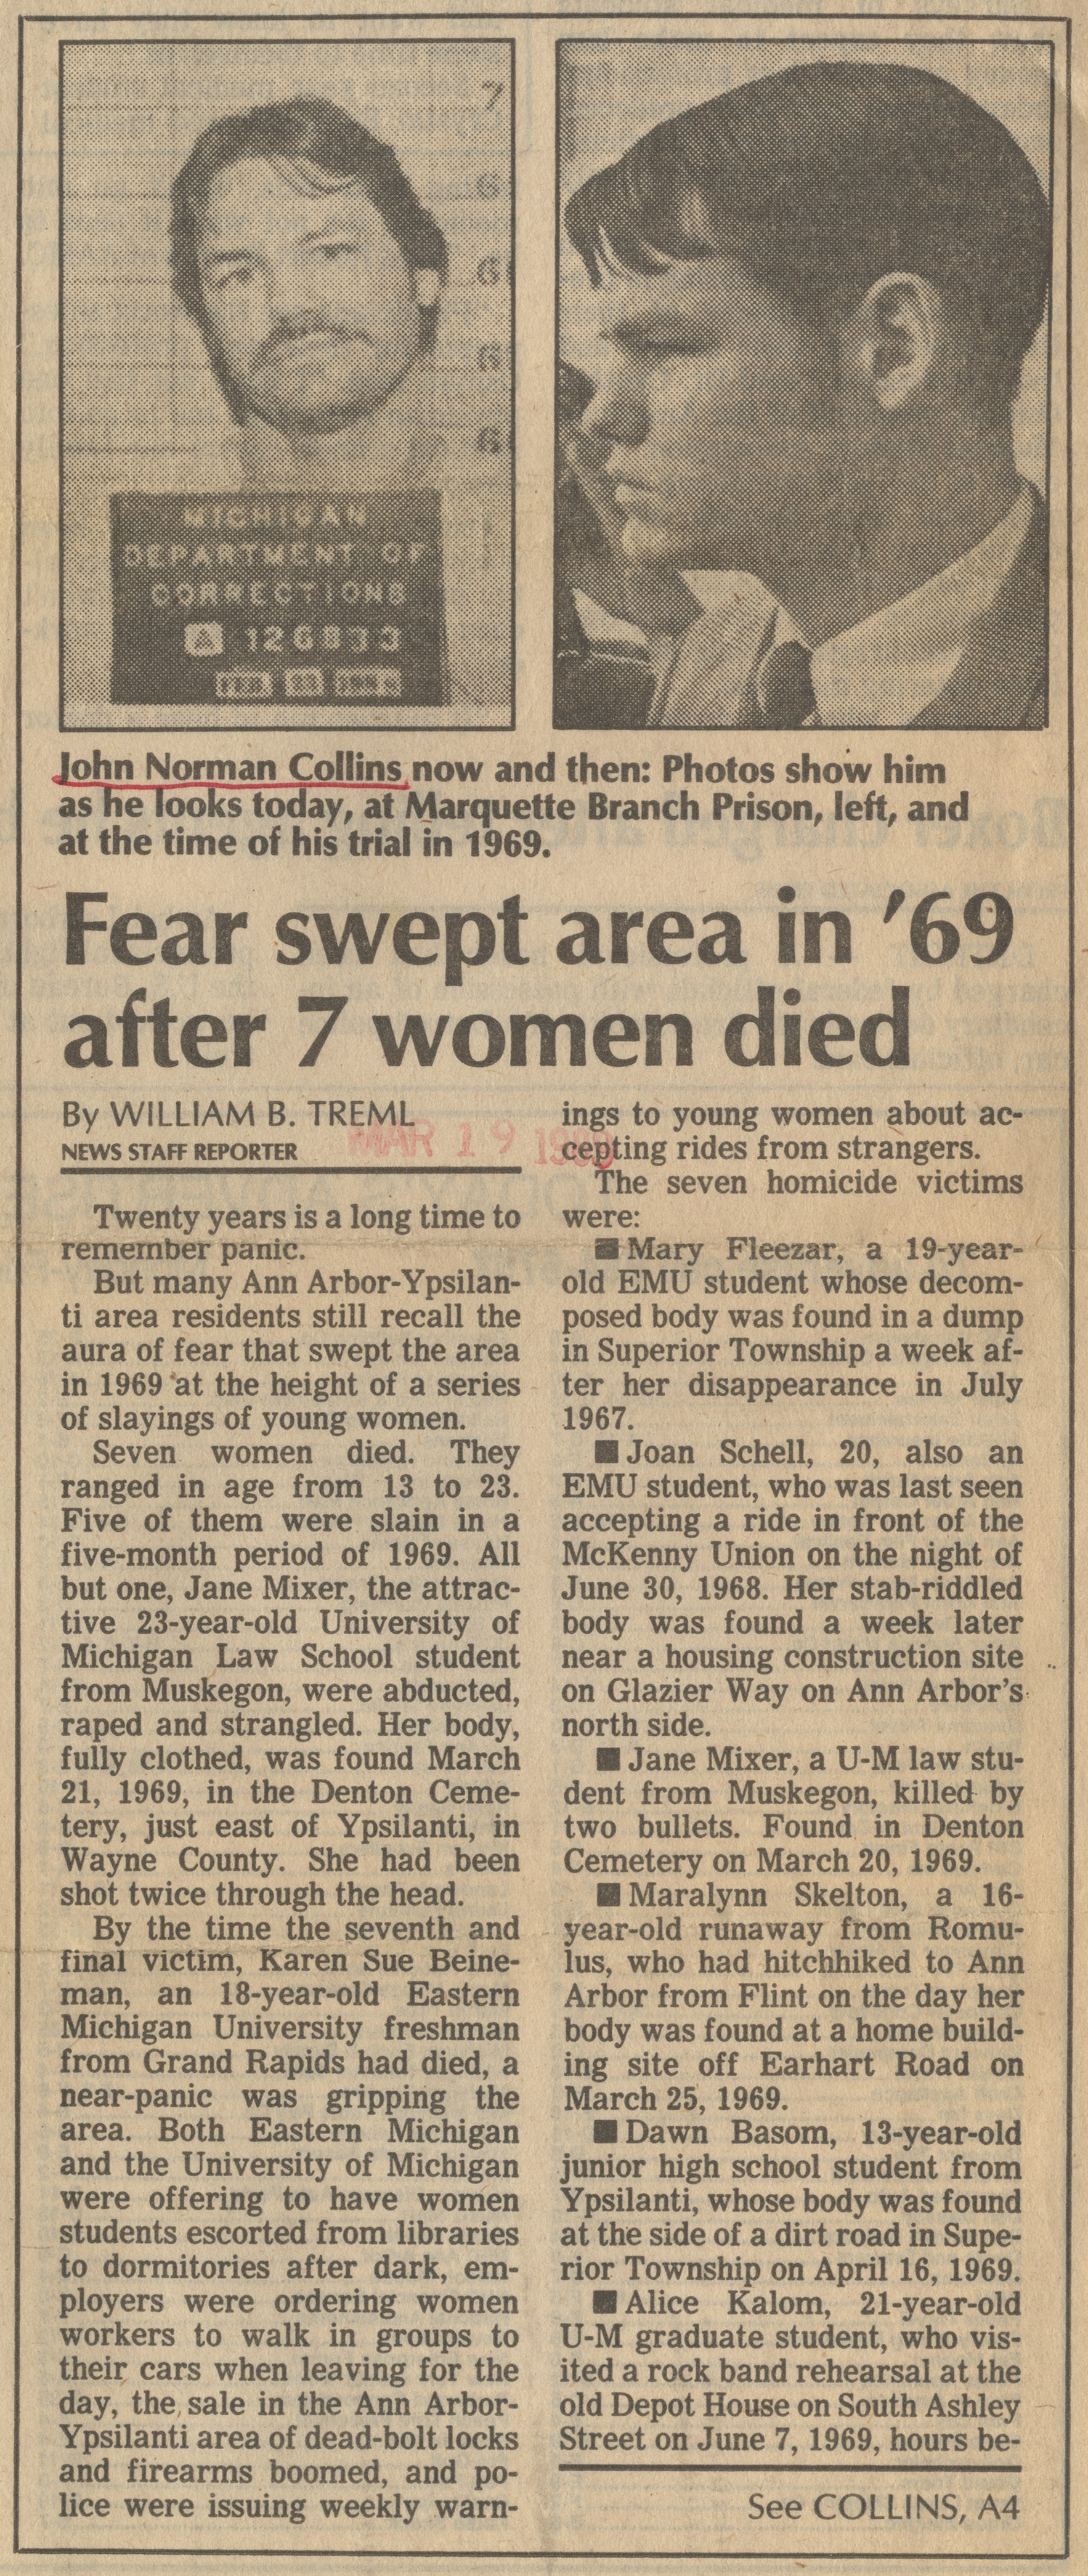 Fear swept area in '60 after 7 women died image